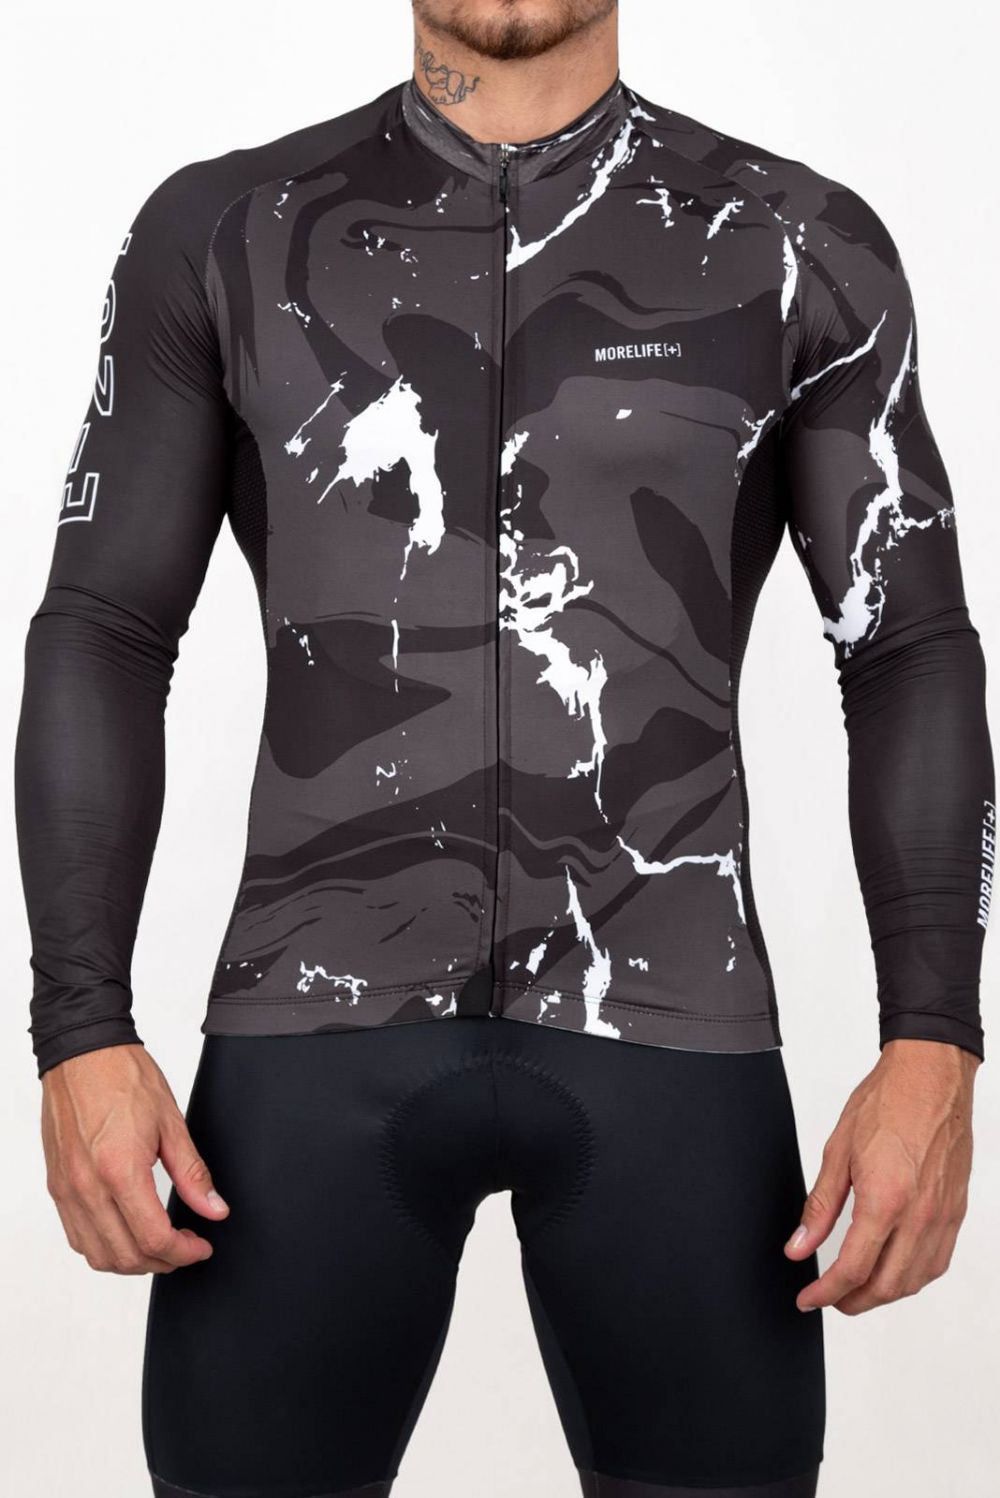 LONG SLEEVE ACTIVE BLACK MARBLE JERSEY BC2226LH